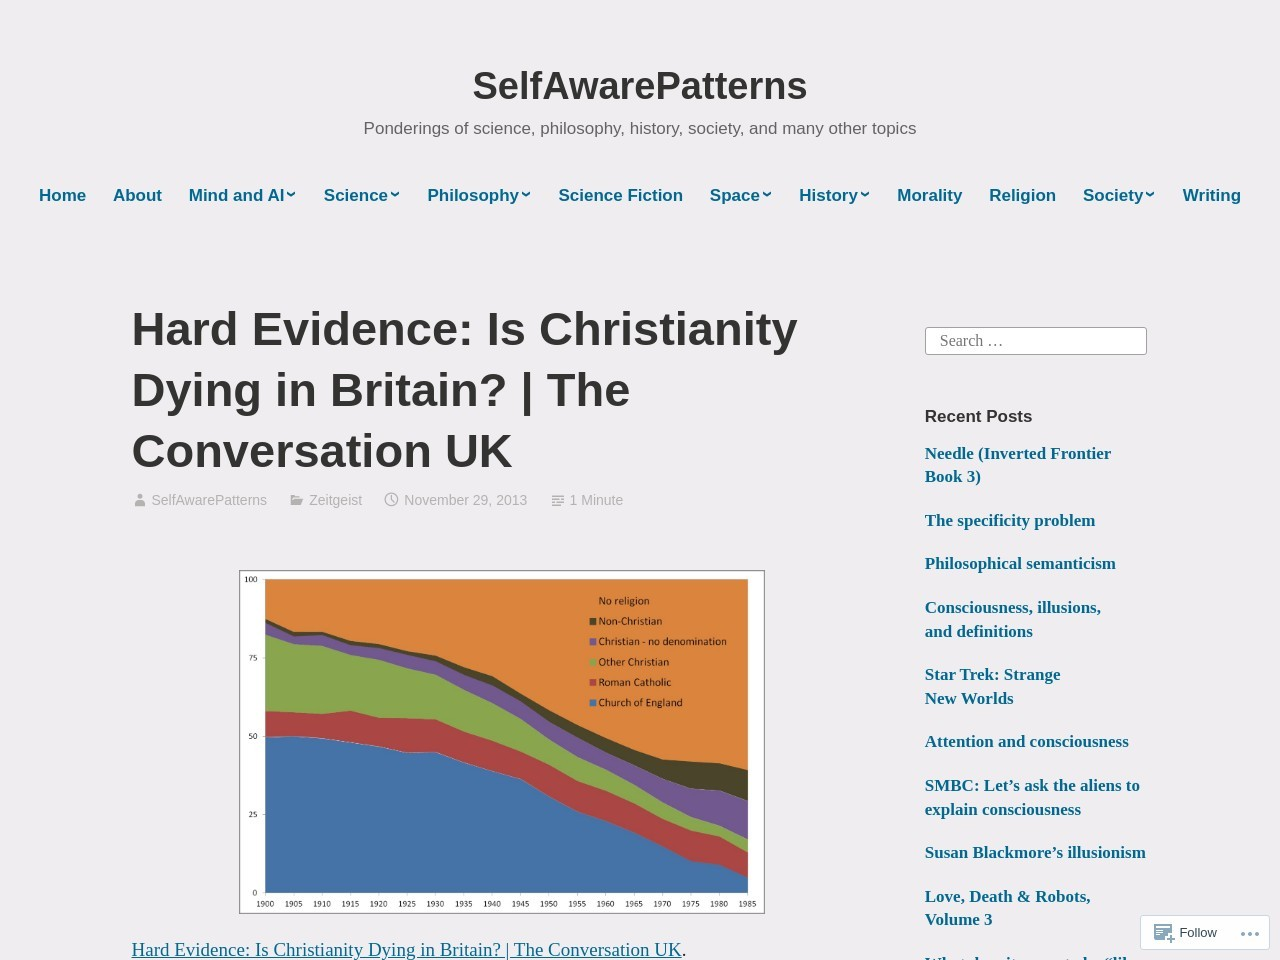 Hard Evidence: Is Christianity Dying in Britain? | The Conversation UK